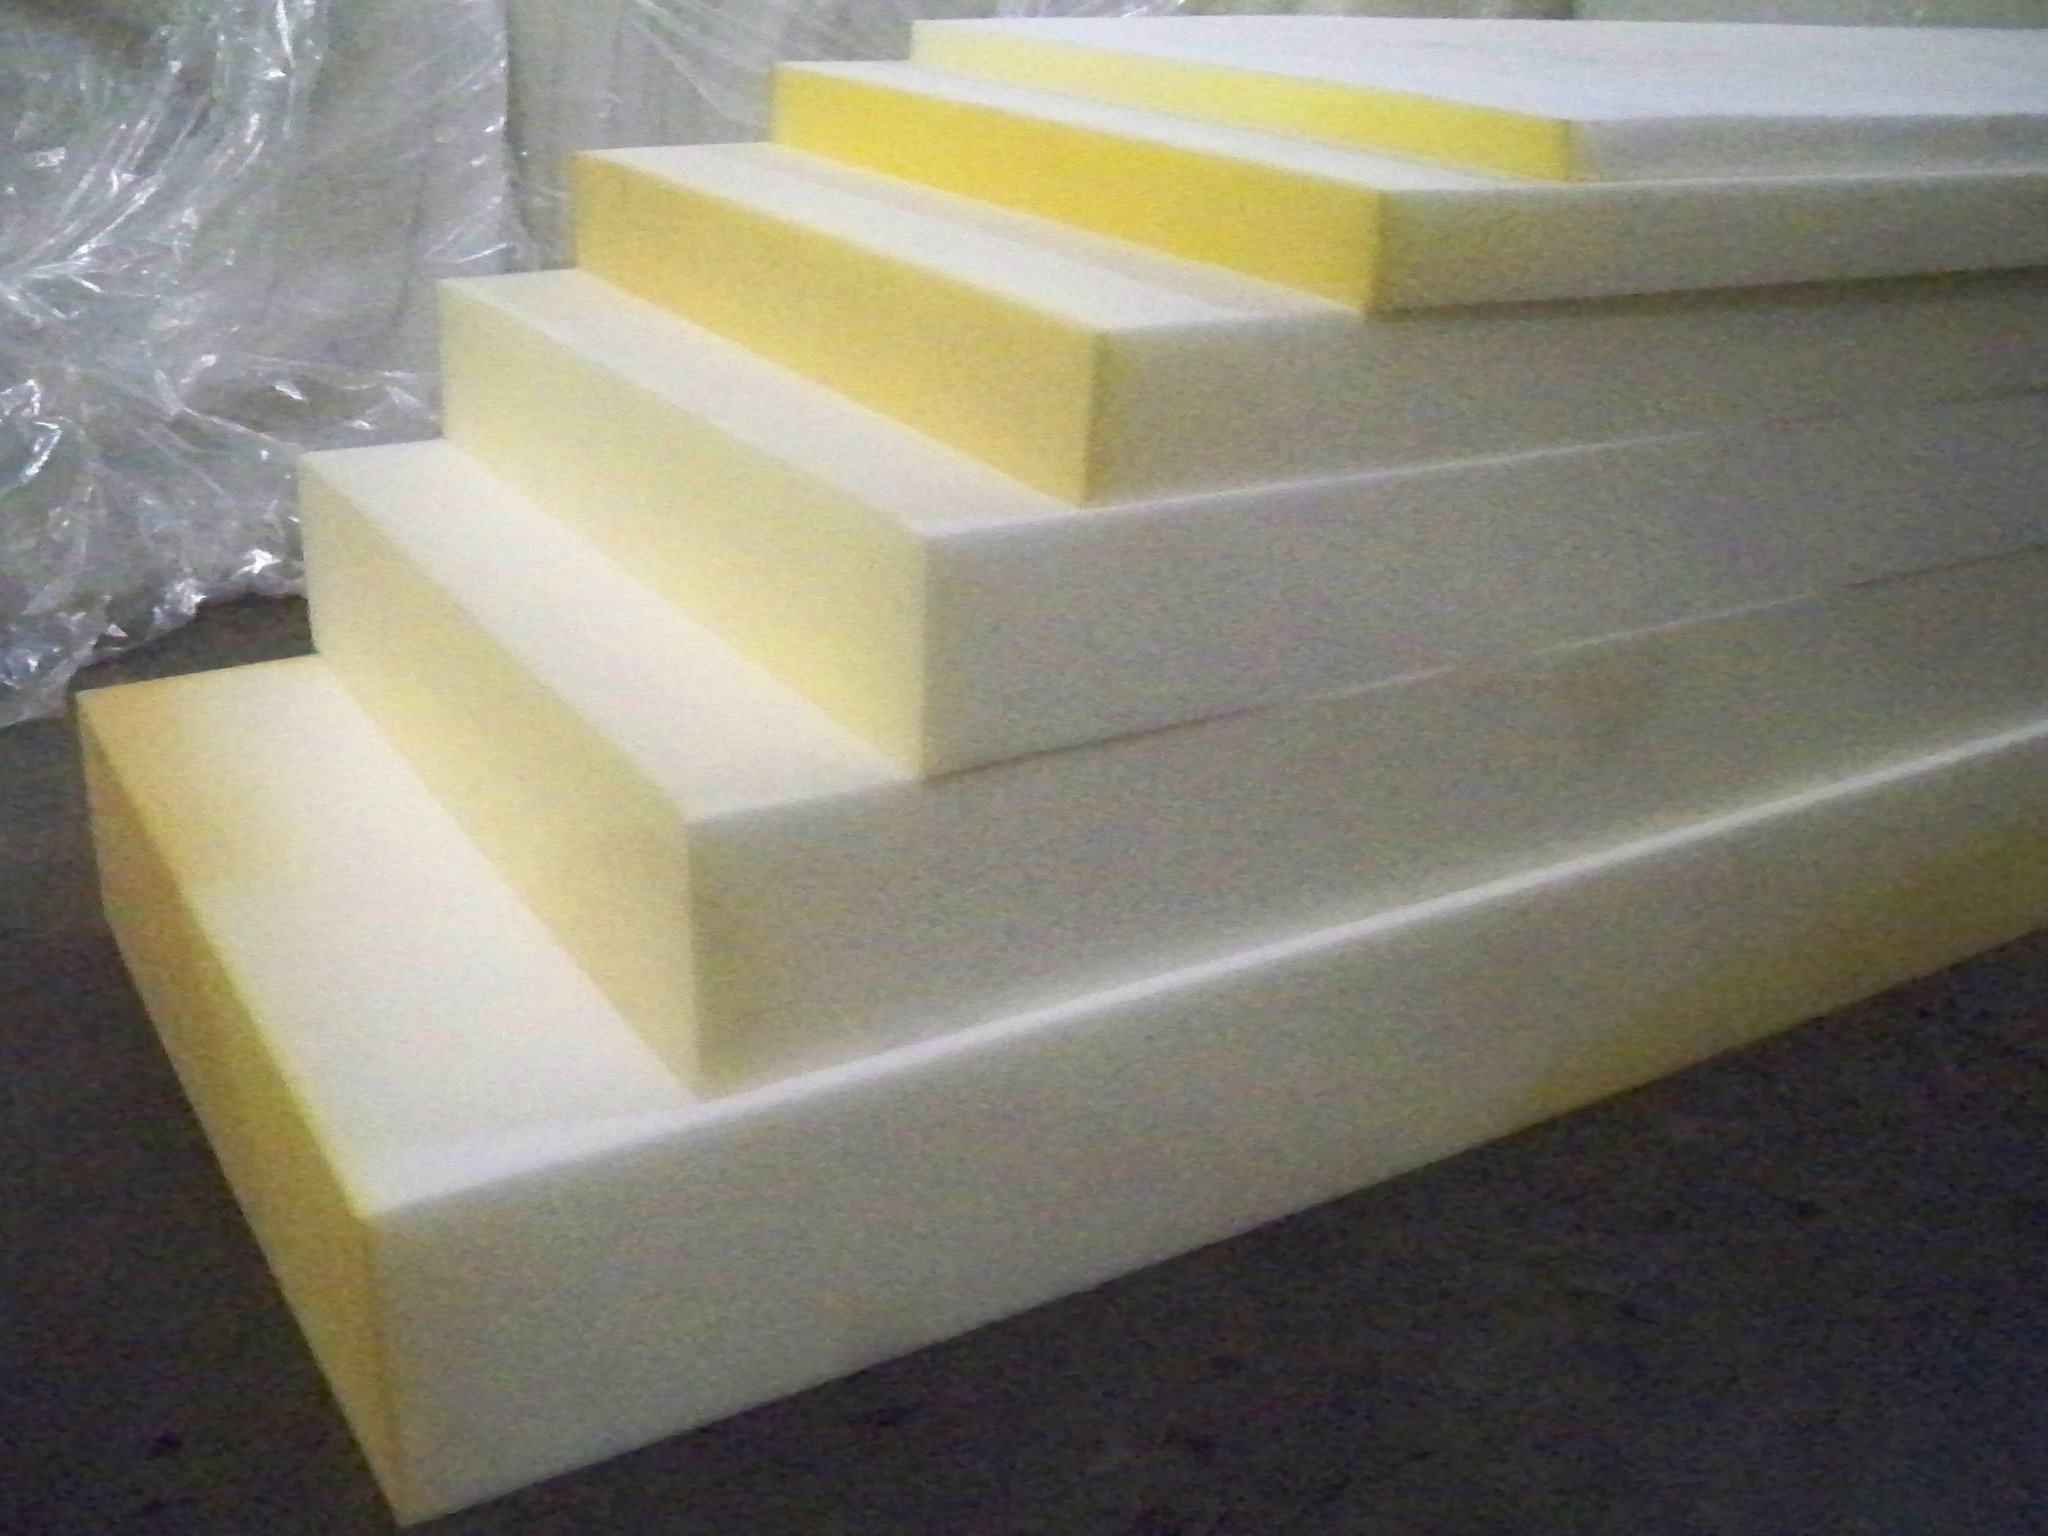 Upholstery Foam Blocks | Upholstering Foam | High Density Upholstery Foam